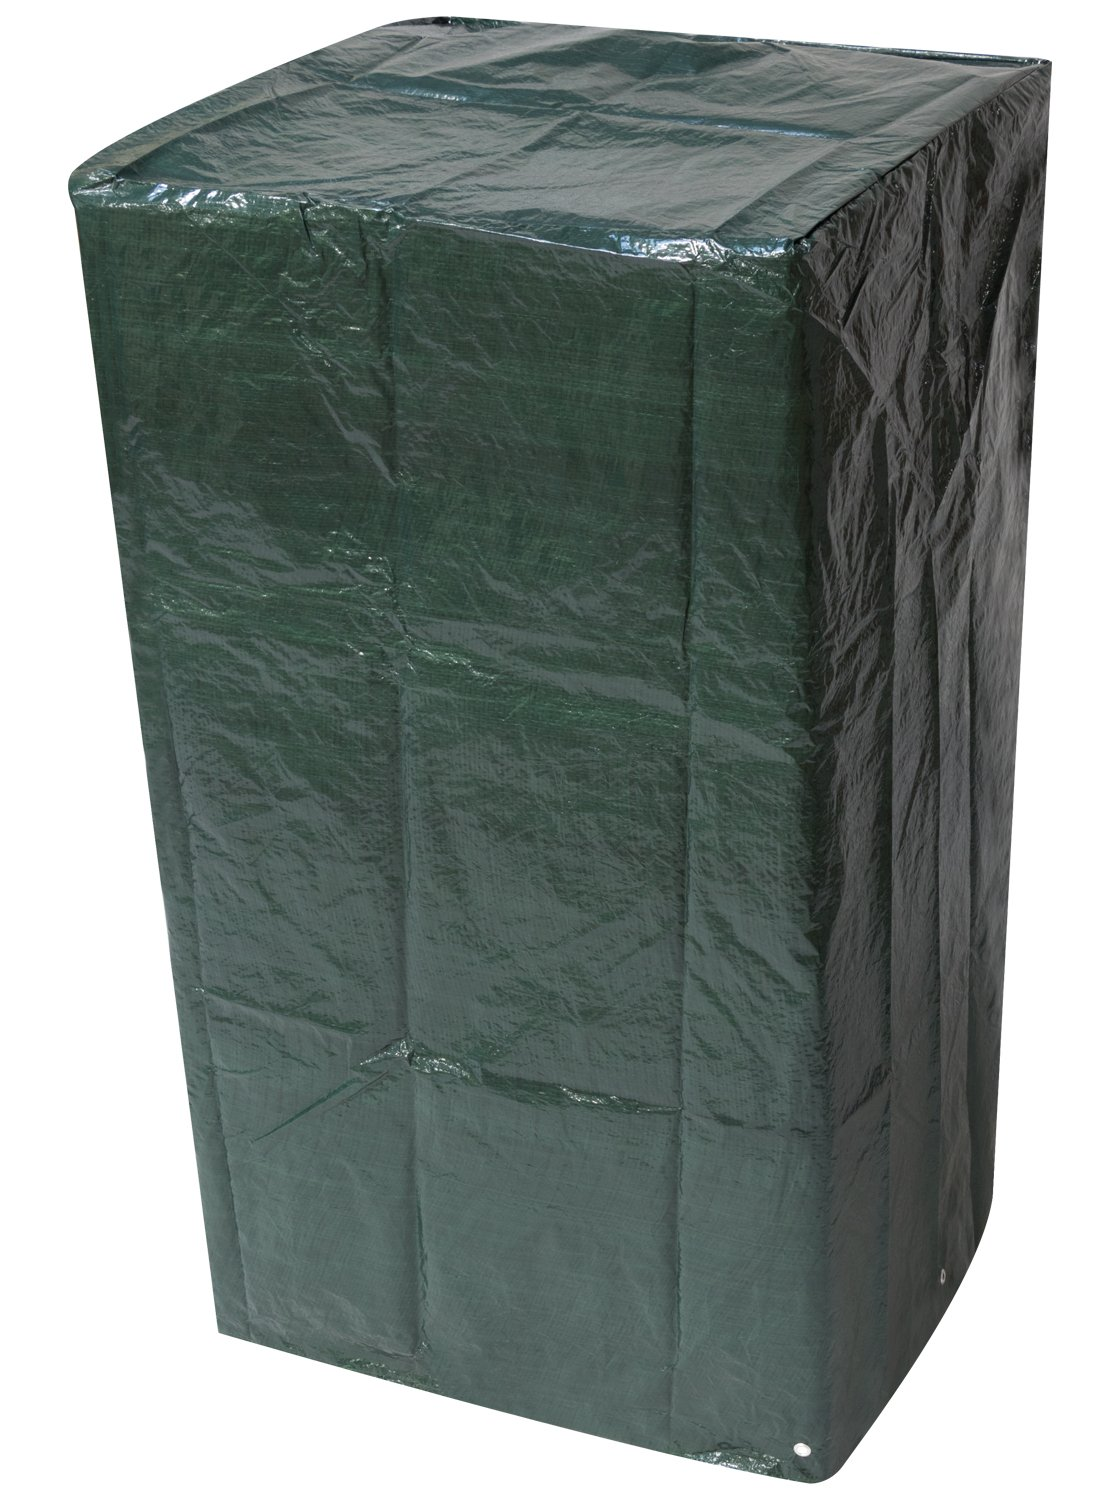 Outdoor Garden Stacking Chair Cover 0.66m x 0.66m x 1.22m / 2.2ft x 2.2ft x 4ft Woodside